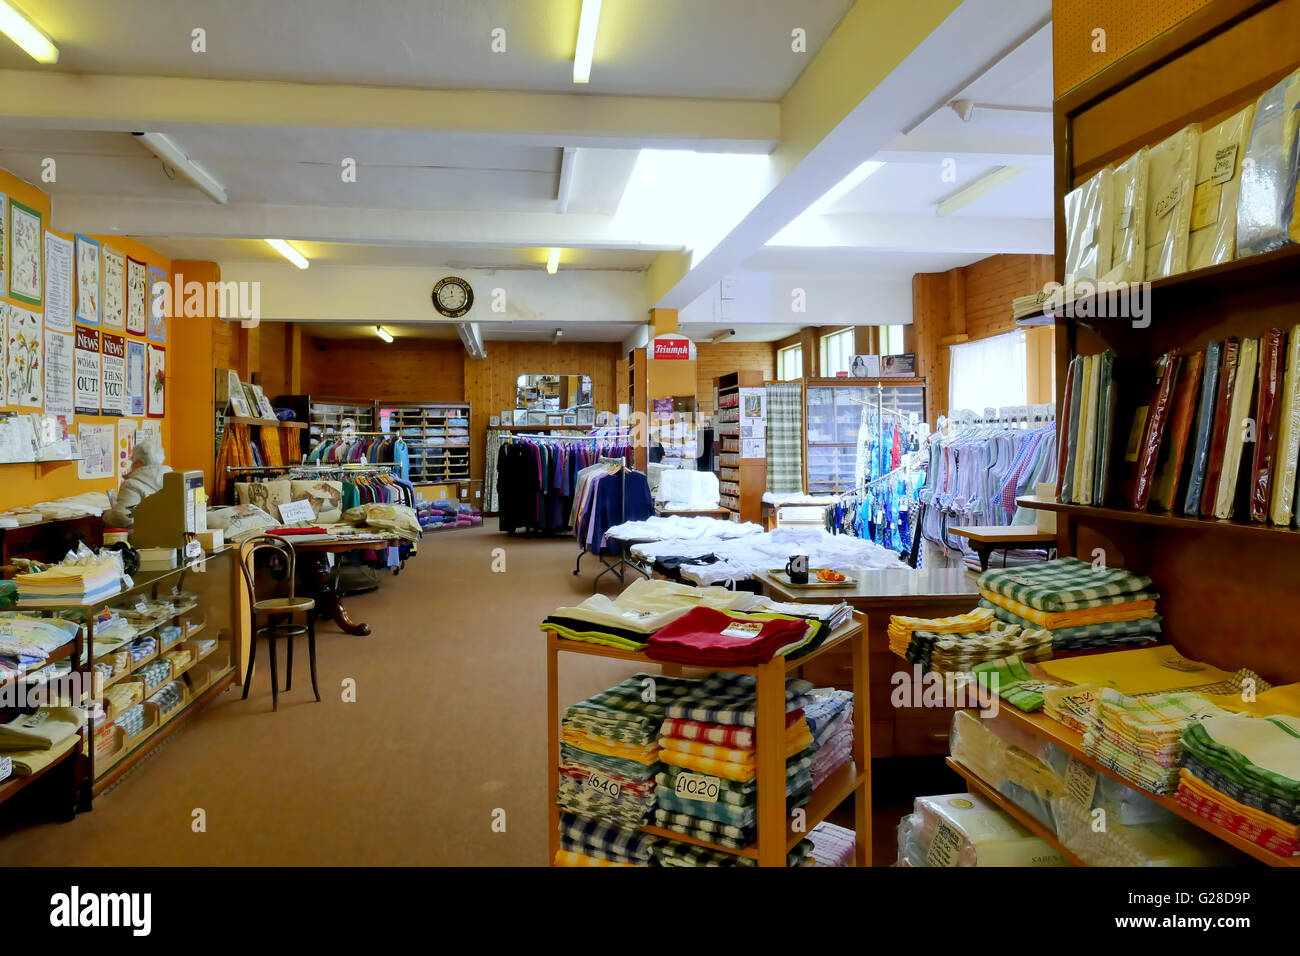 BRIDLINGTON, YORKSHIRE, UK. MAY 11, 2016. Inside  Ernest Whiteley's ladies' outfitters that has hardly changed in Stock Photo